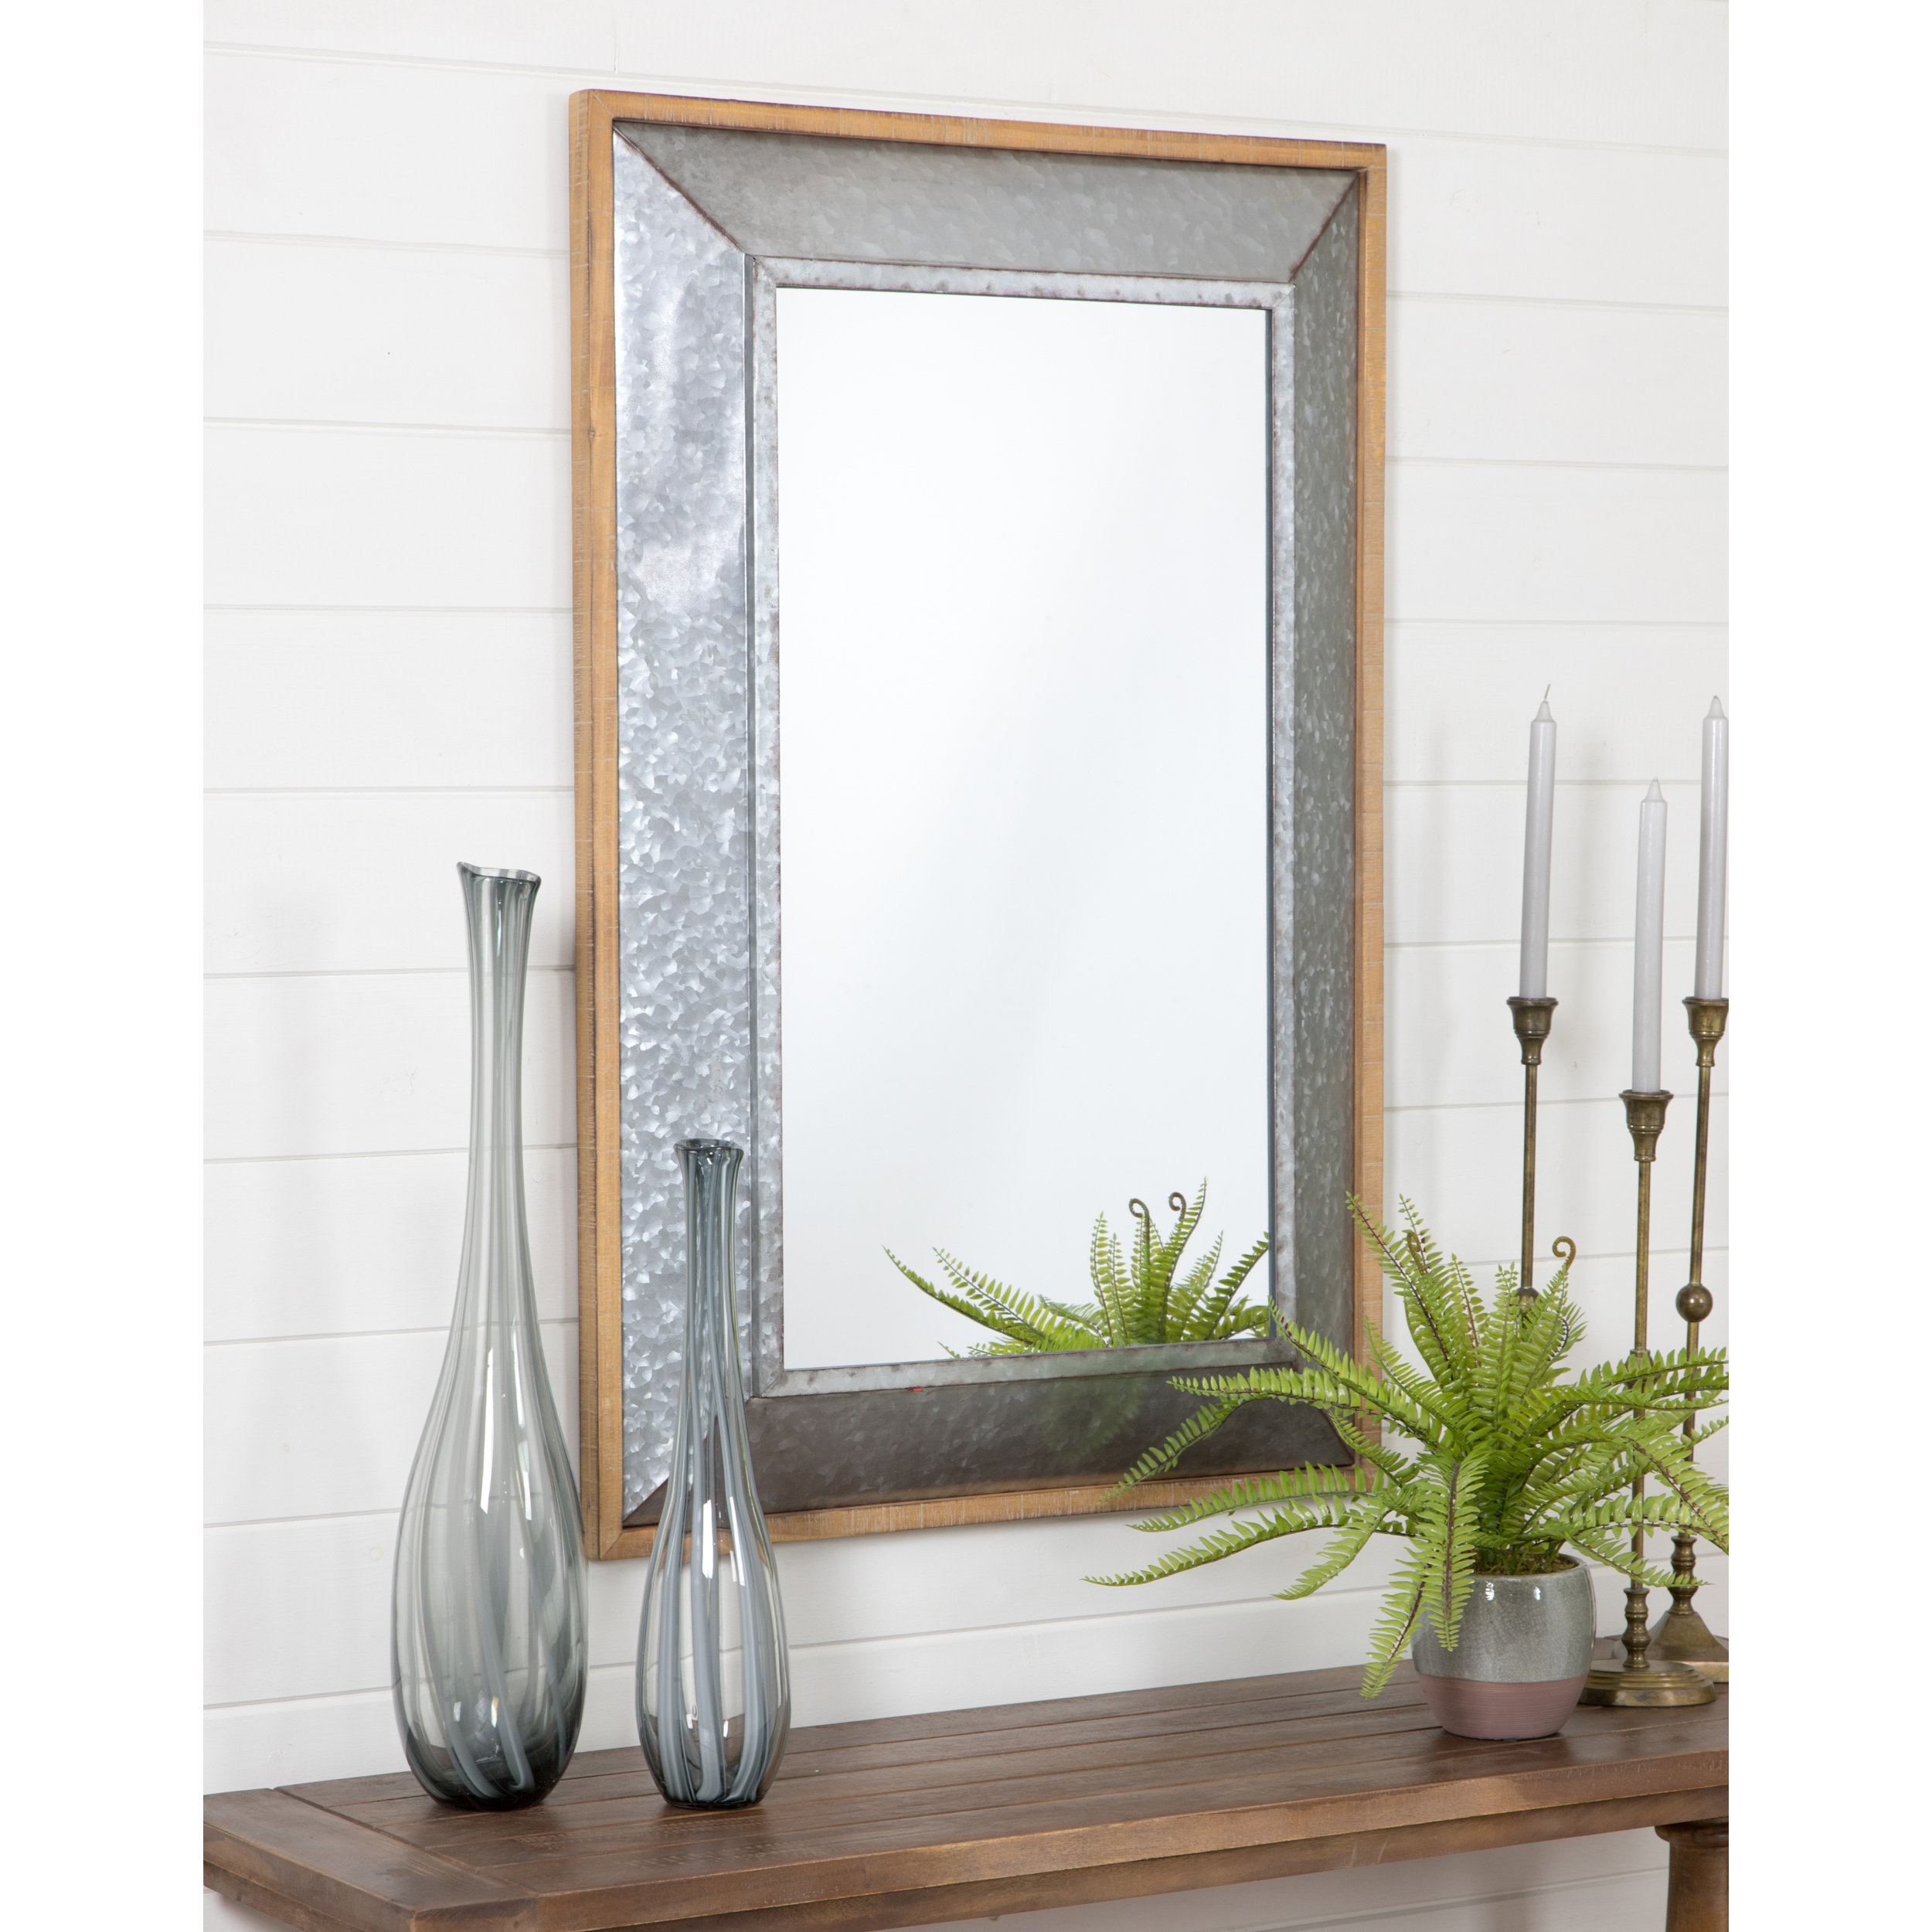 Modern Farmhouse Mirror | Wayfair For Kist Farmhouse Wall Mirrors (View 7 of 20)